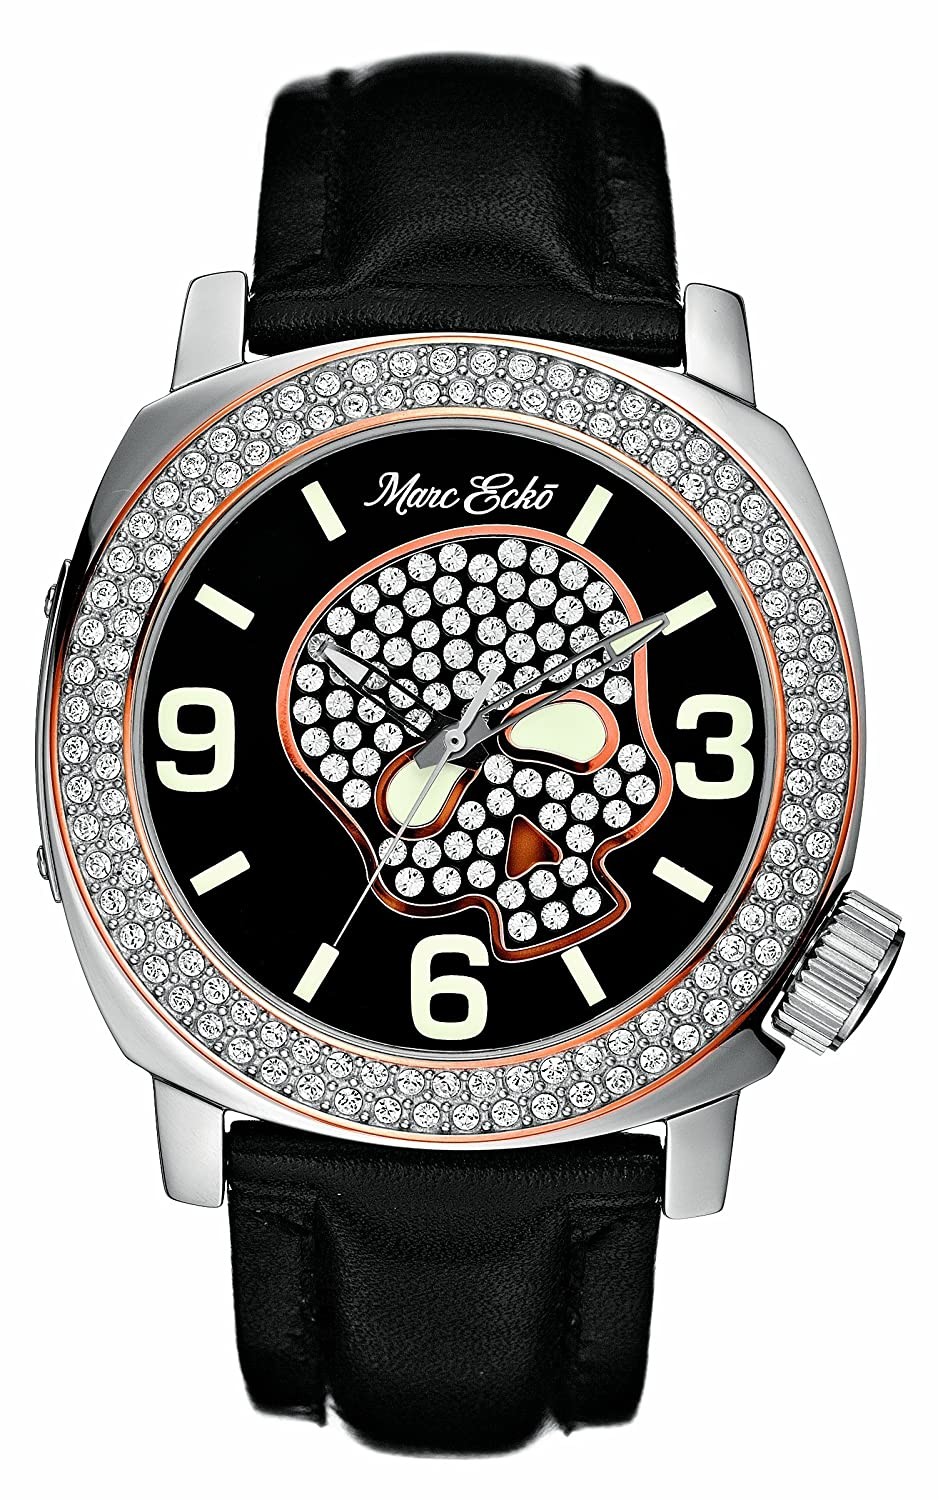 c0e942bdd3 Amazon.com: Marc Ecko Men's E13524G1 Black Leather Skull Face Watch: Marc  Ecko: Watches